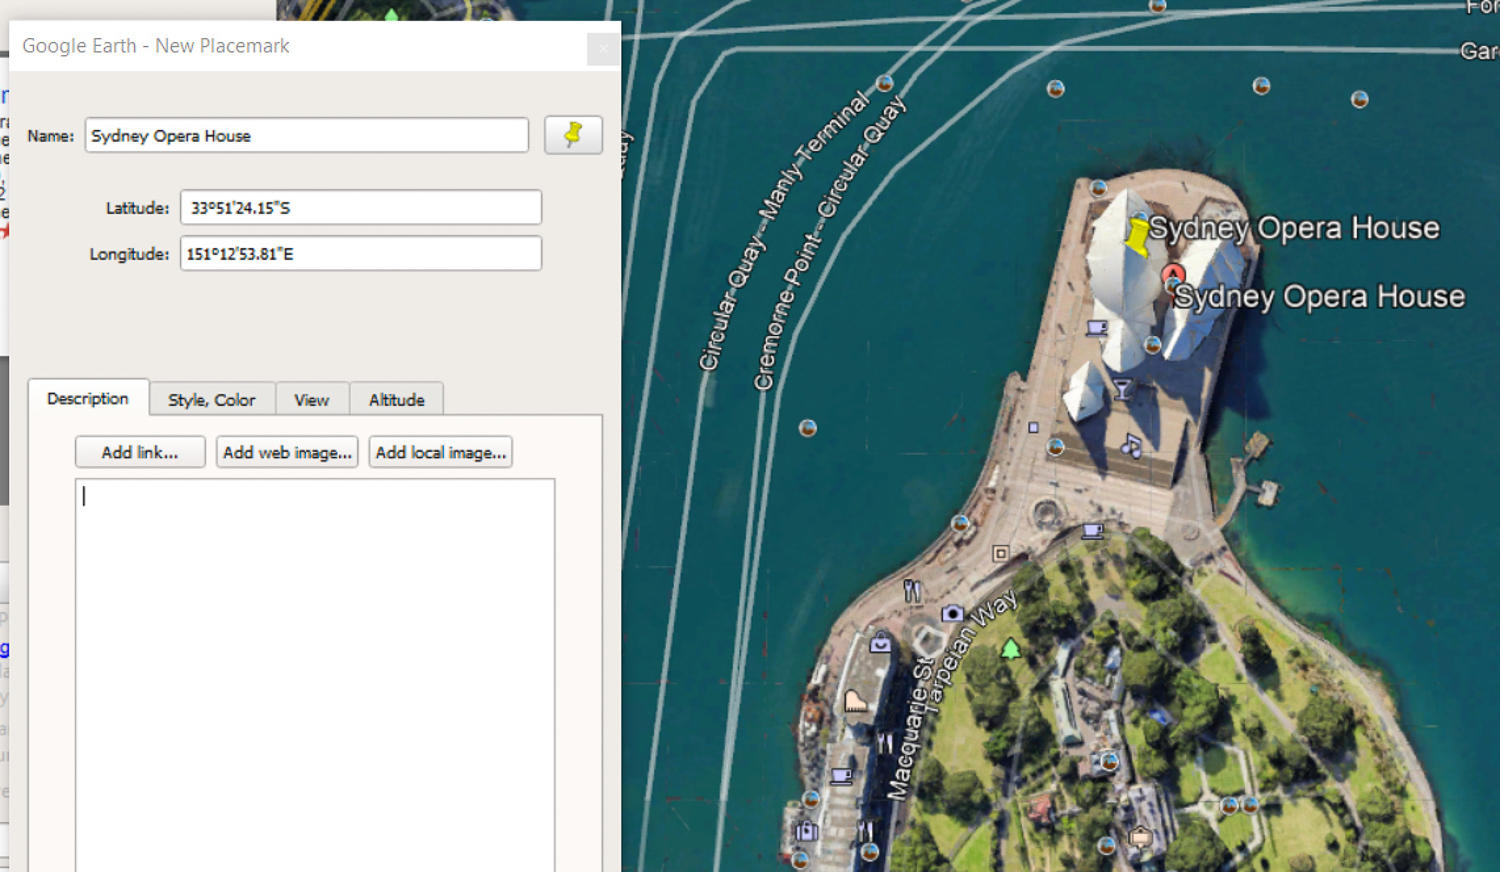 Sydney Opera House GPS coordinates in Google Earth